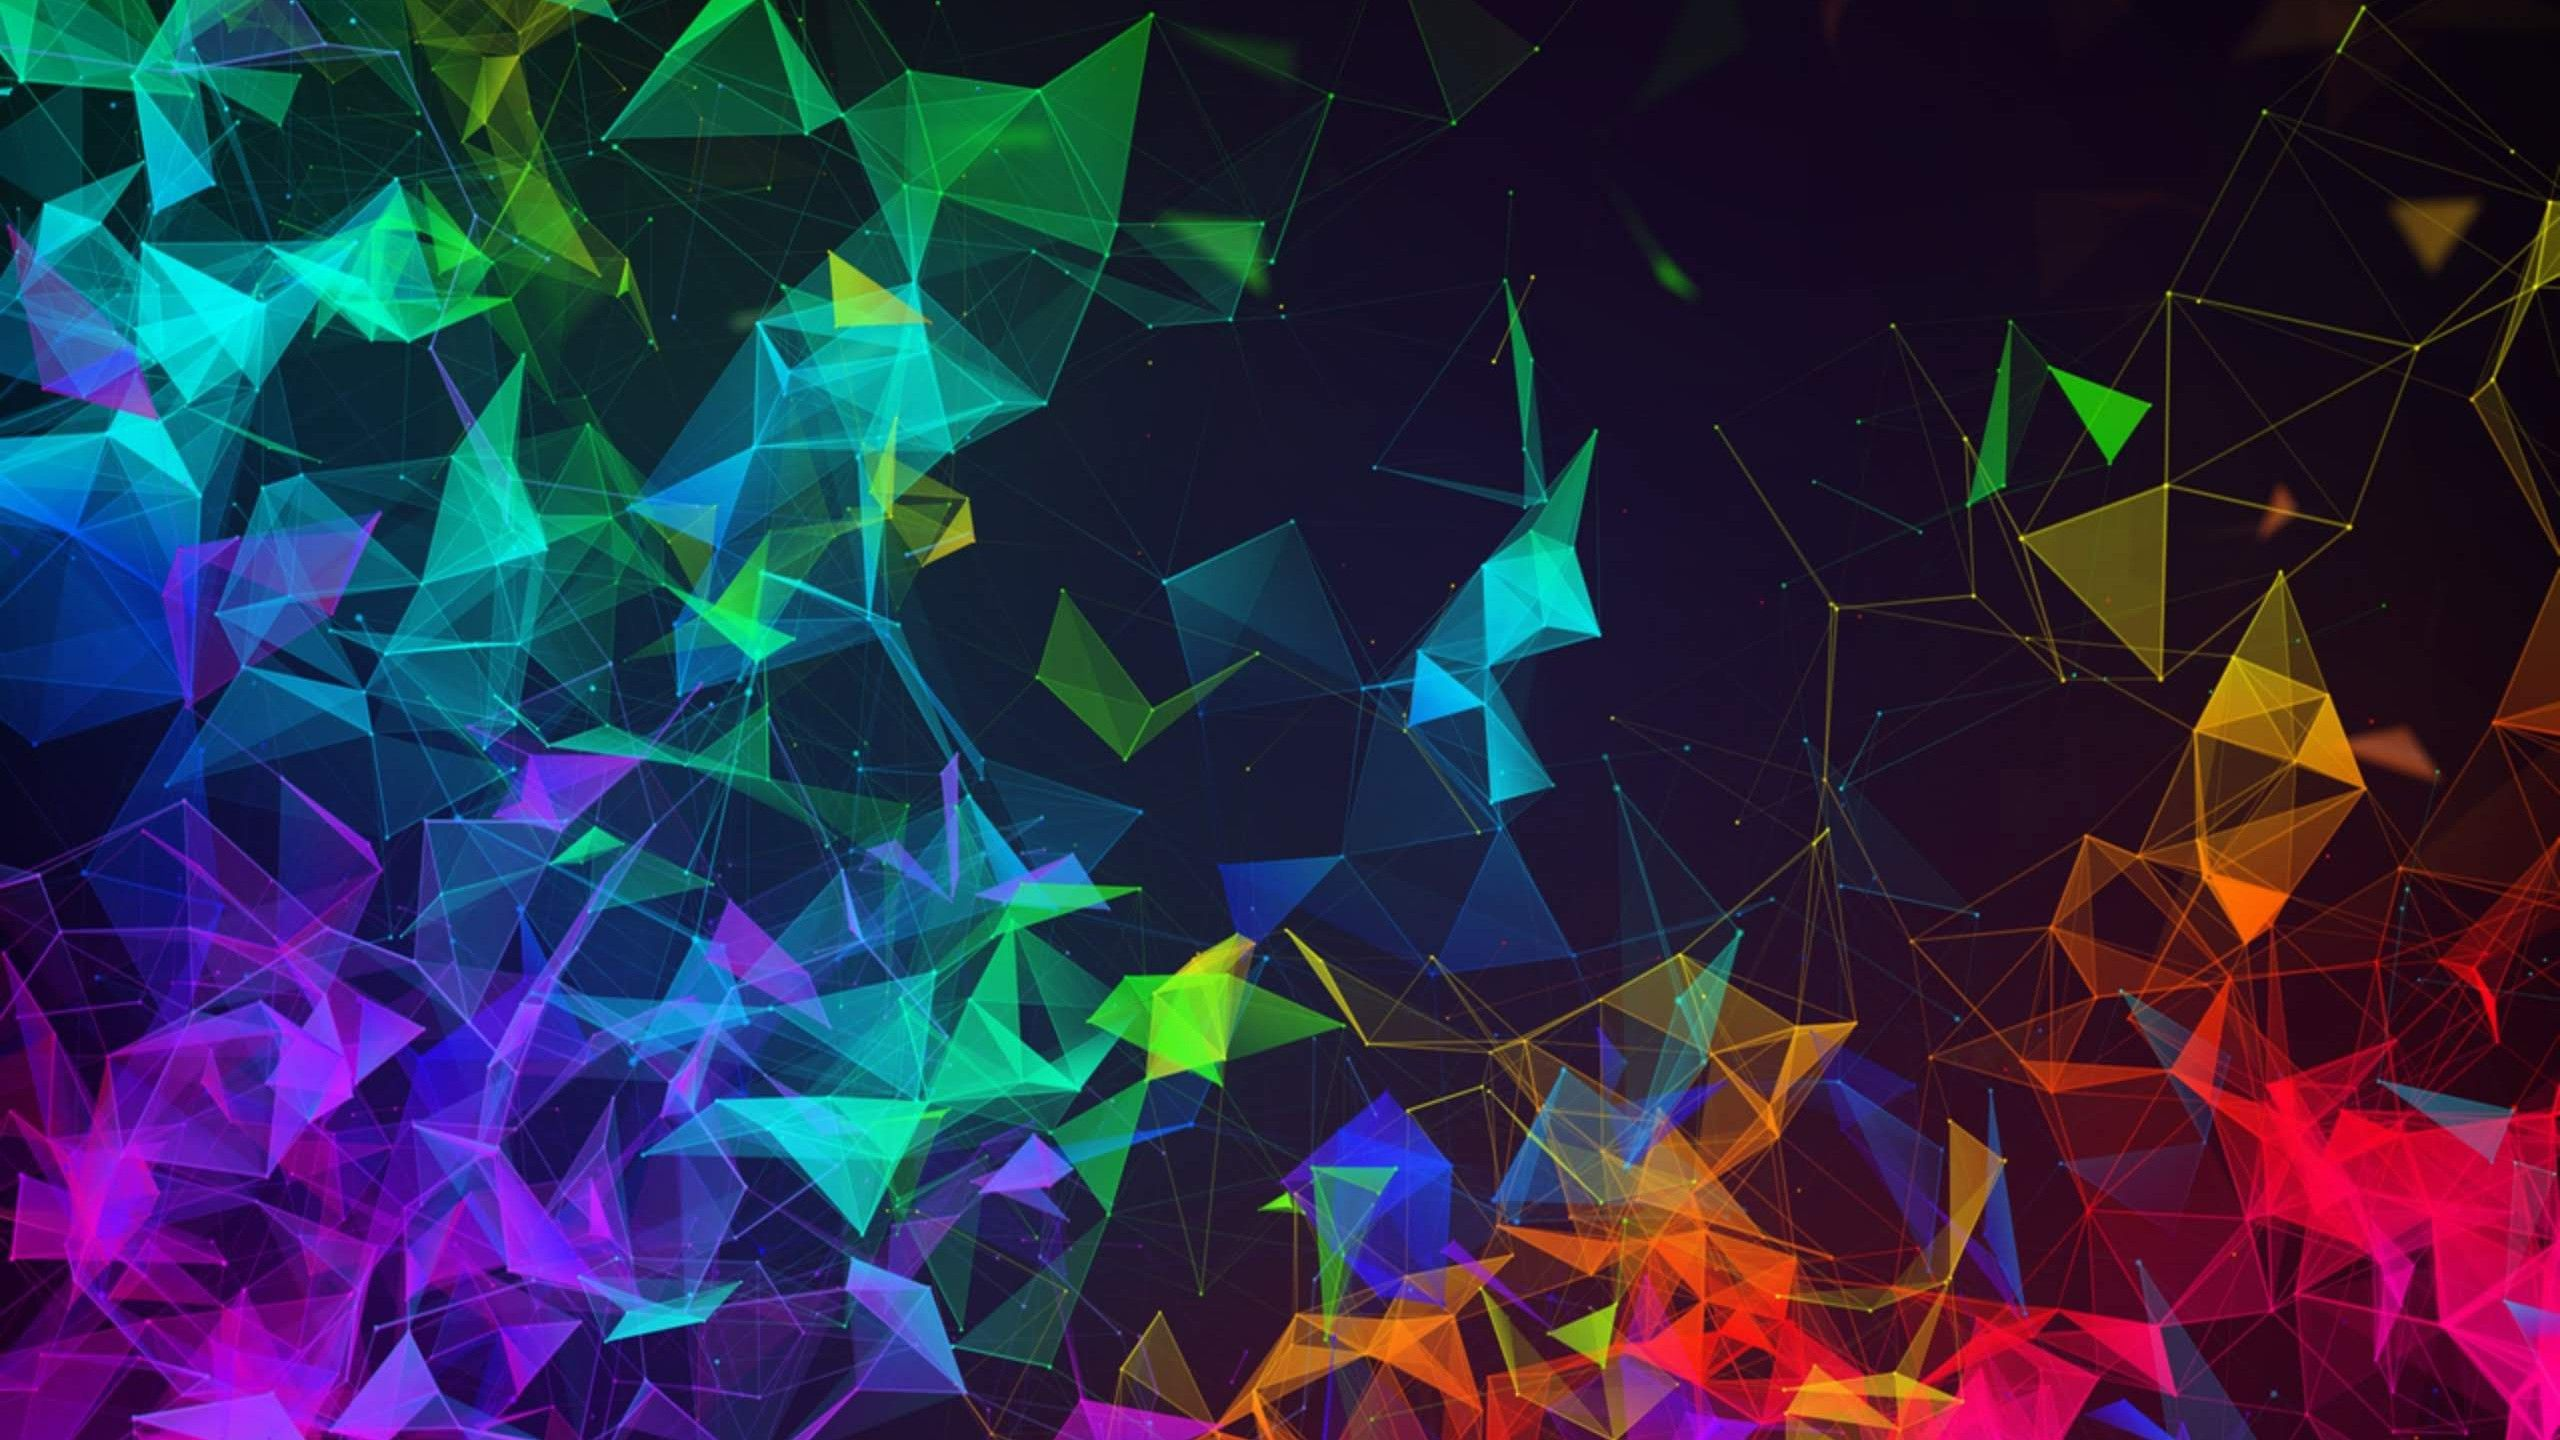 2560x1440 Wallpaper Razer Phone 2, abstract, colorful, HD, OS #20751